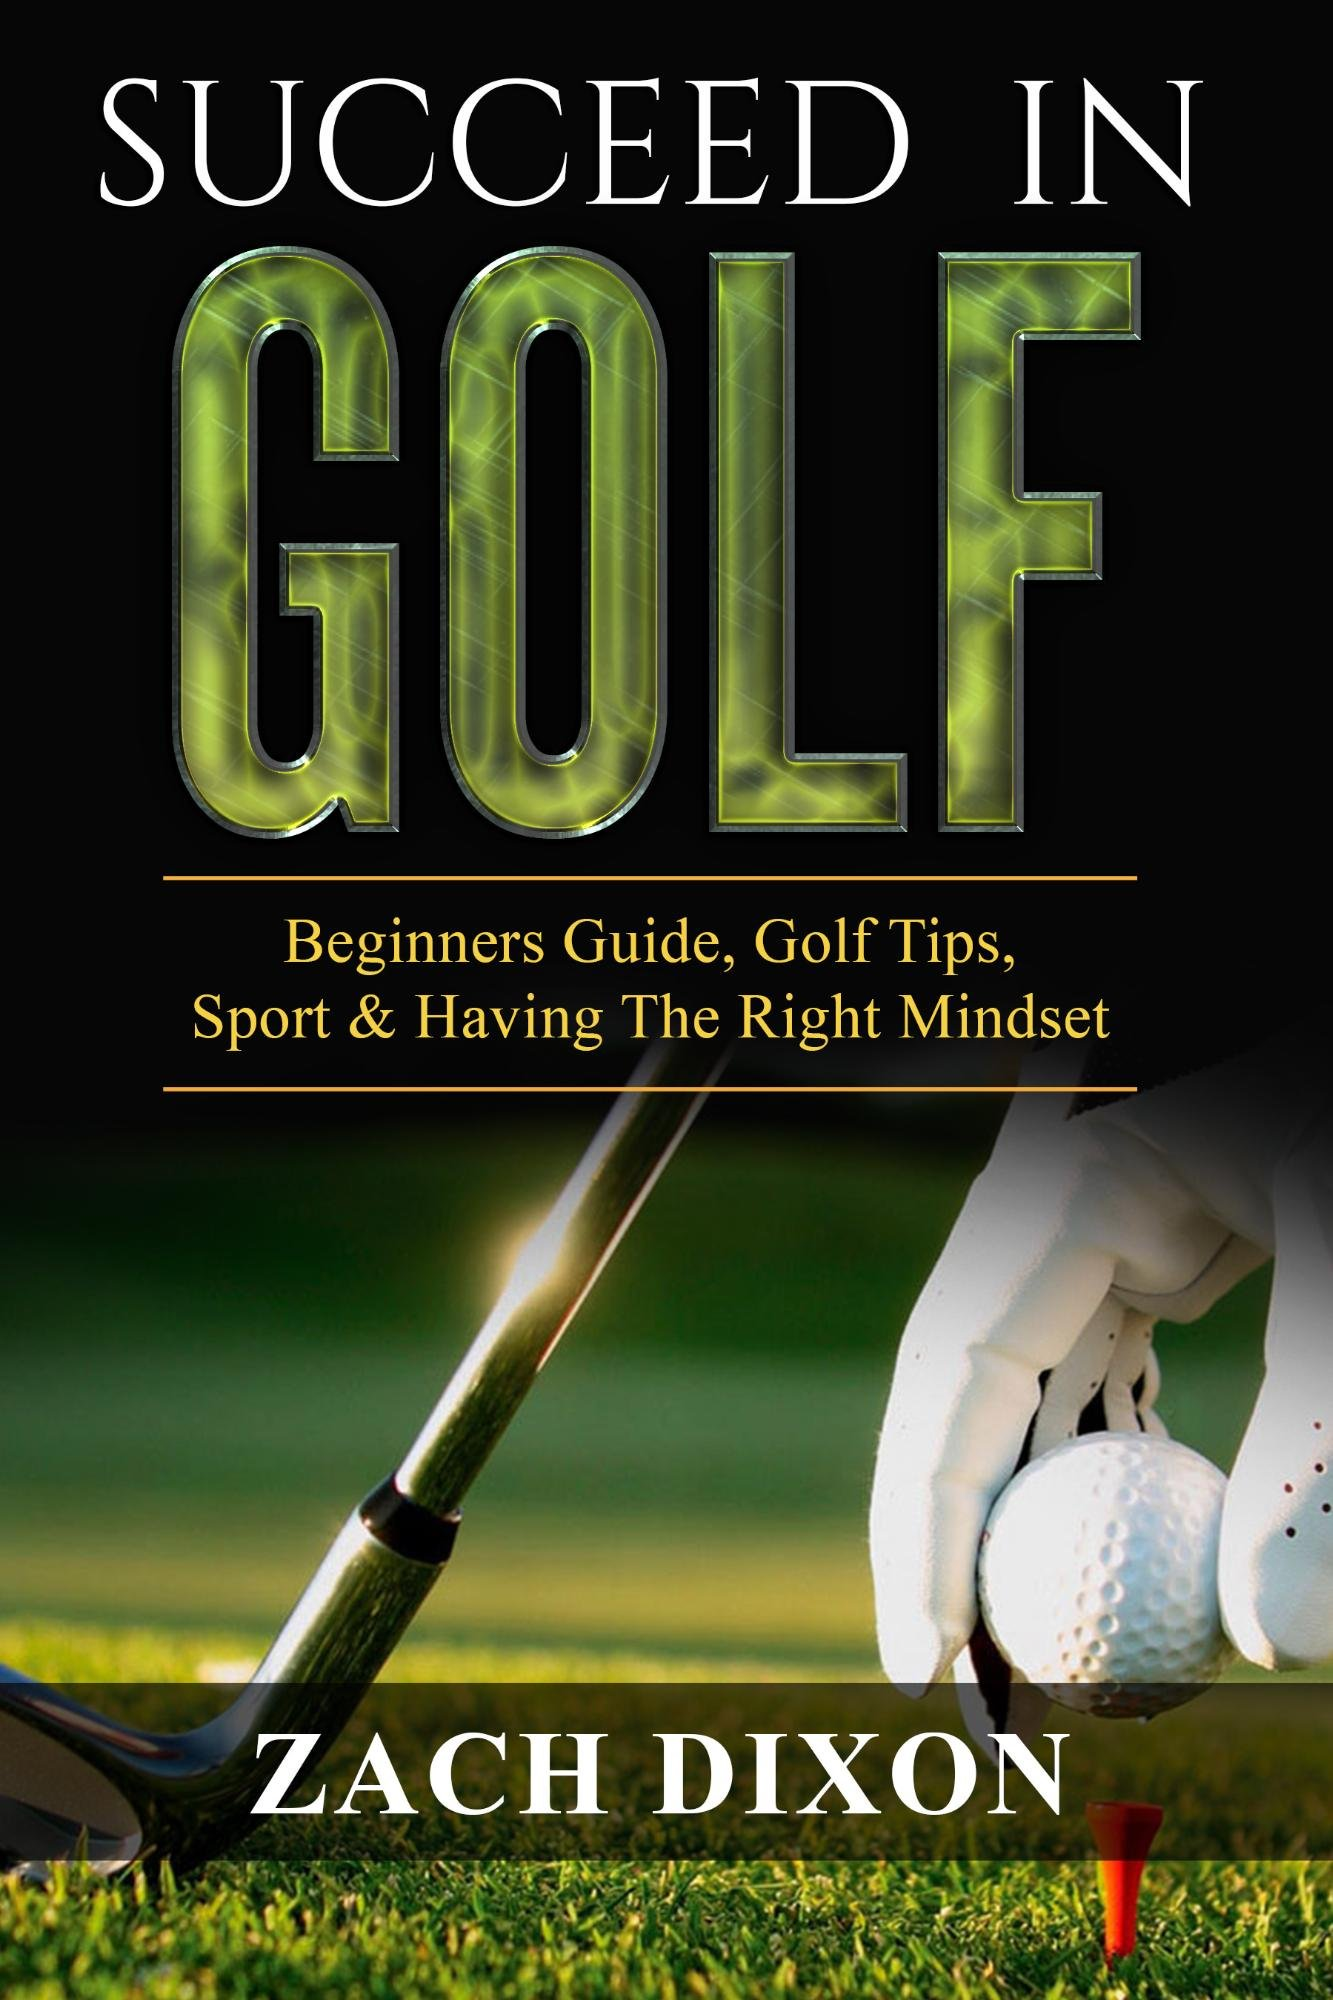 Download Golf: Succeed In Golf: Beginners Guide, Golf Tips, Sport & Having The Right Mindset (BONUS 45minute Mindset Golf Coaching)... 